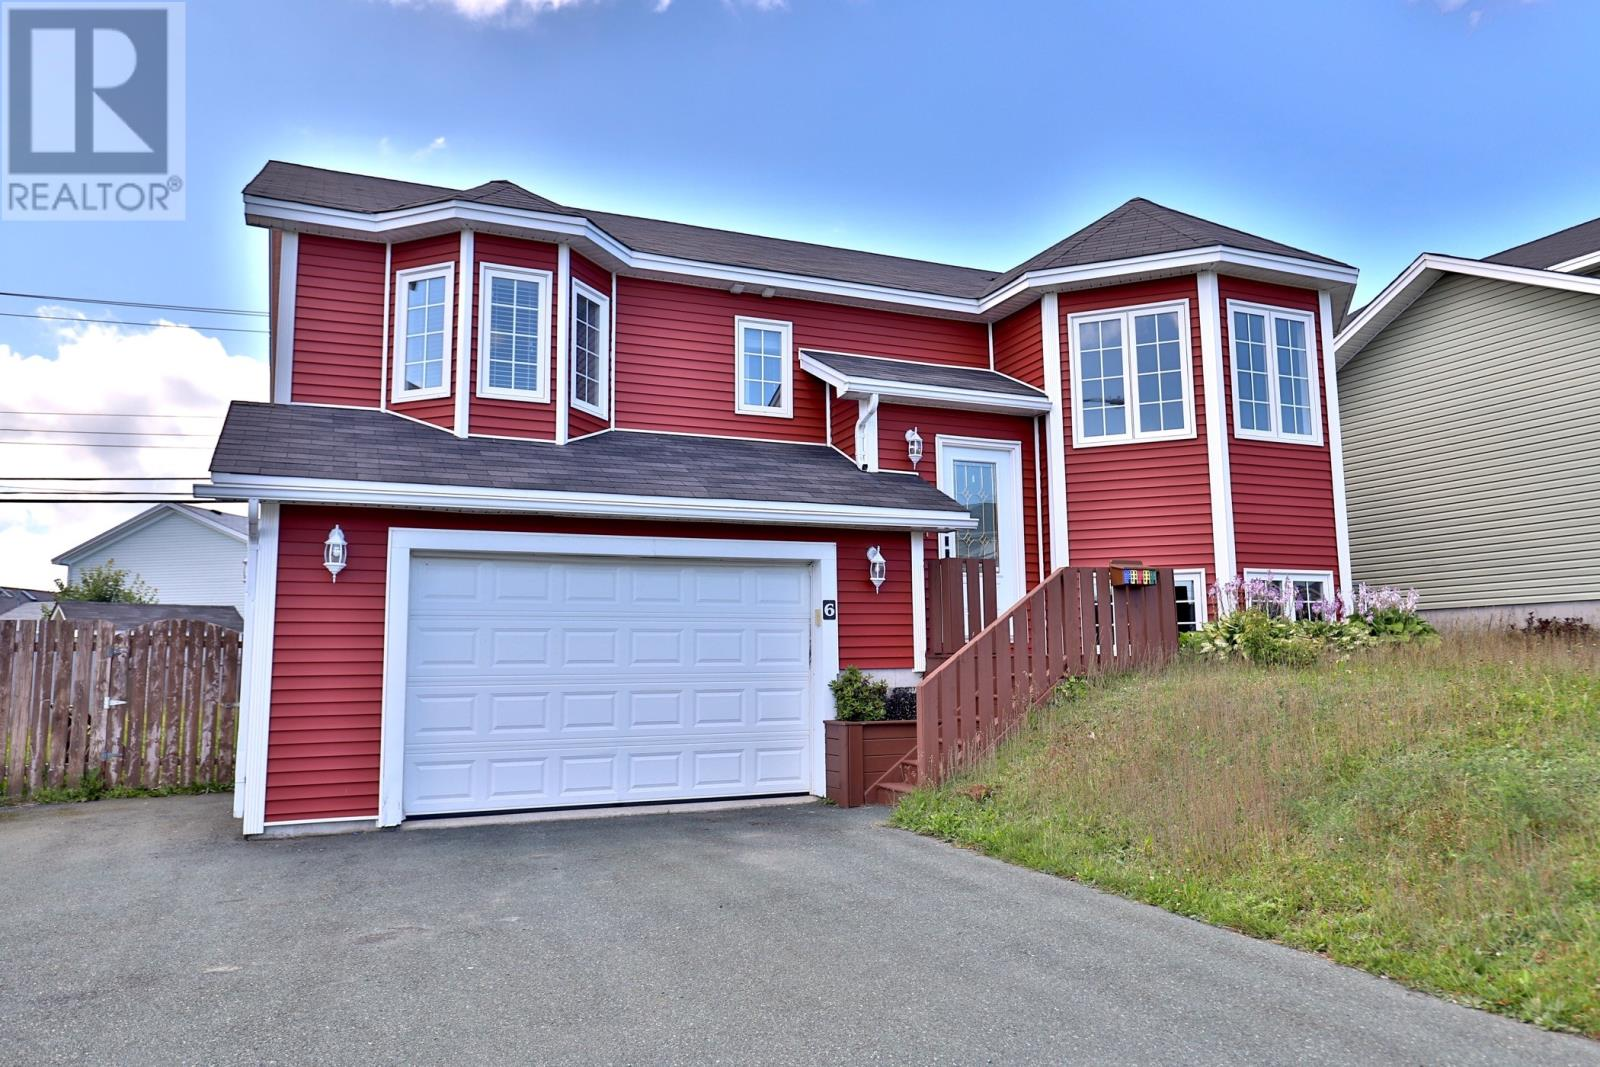 Removed: 6 Caribou Place, St Johns, NL - Removed on 2019-11-03 11:57:14